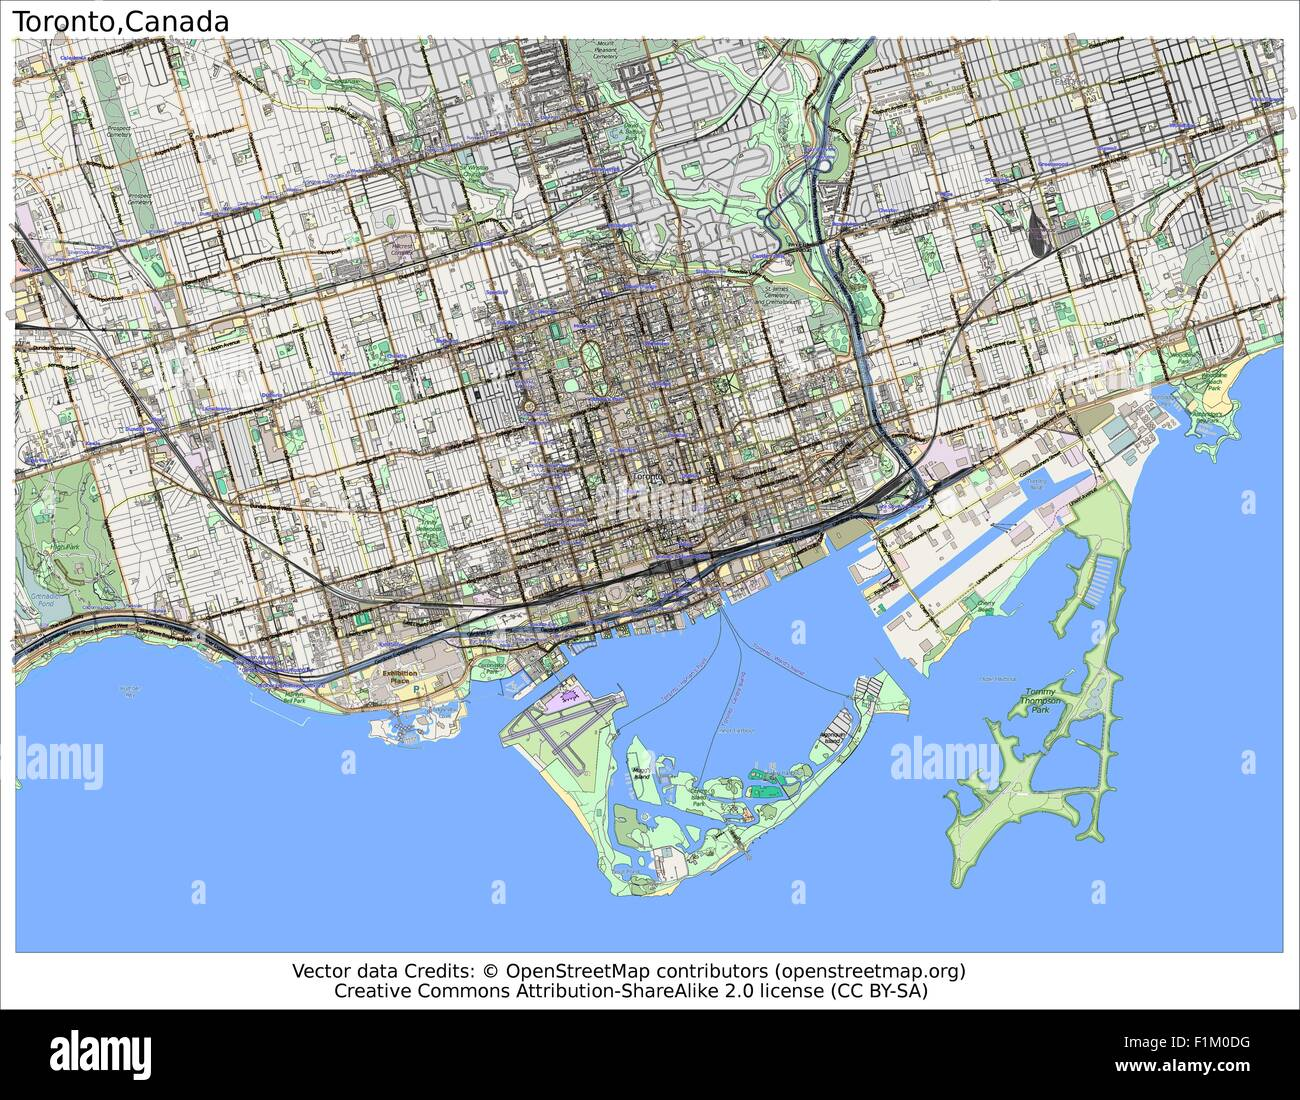 Canada Aerial Map Toronto Canada map aerial view Stock Vector Image & Art   Alamy